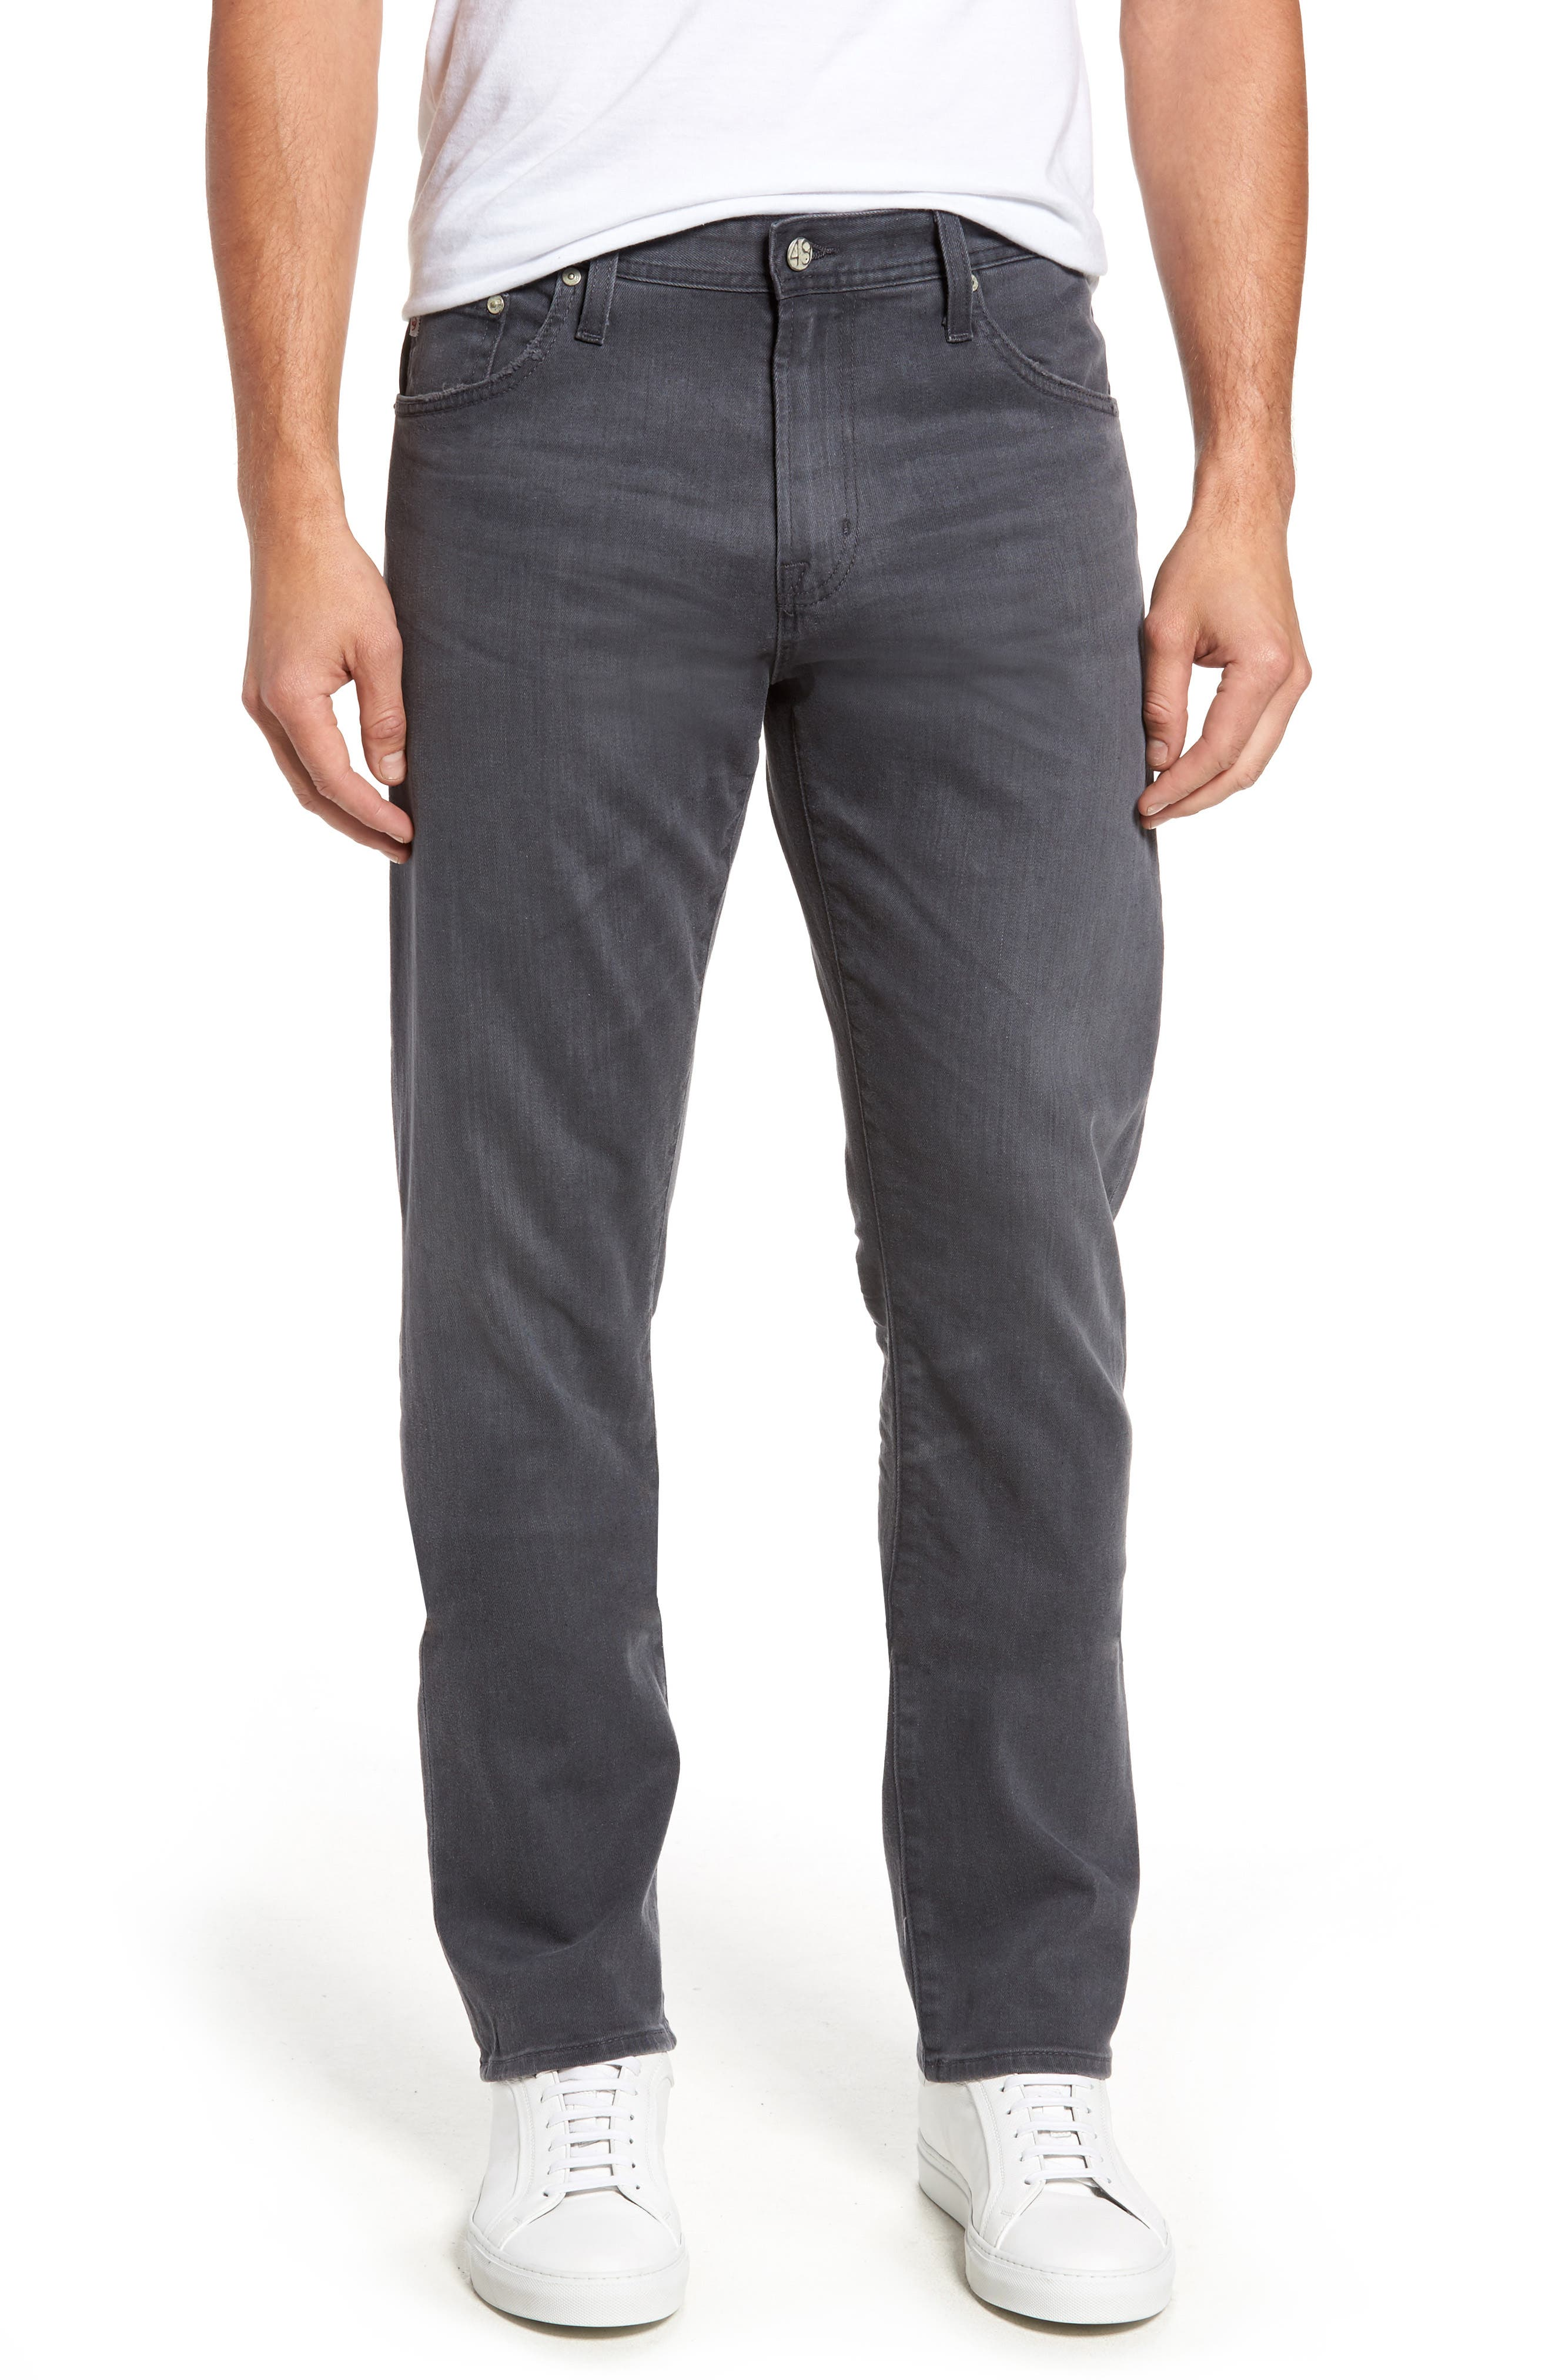 Ives Straight Leg Jeans,                         Main,                         color, 020